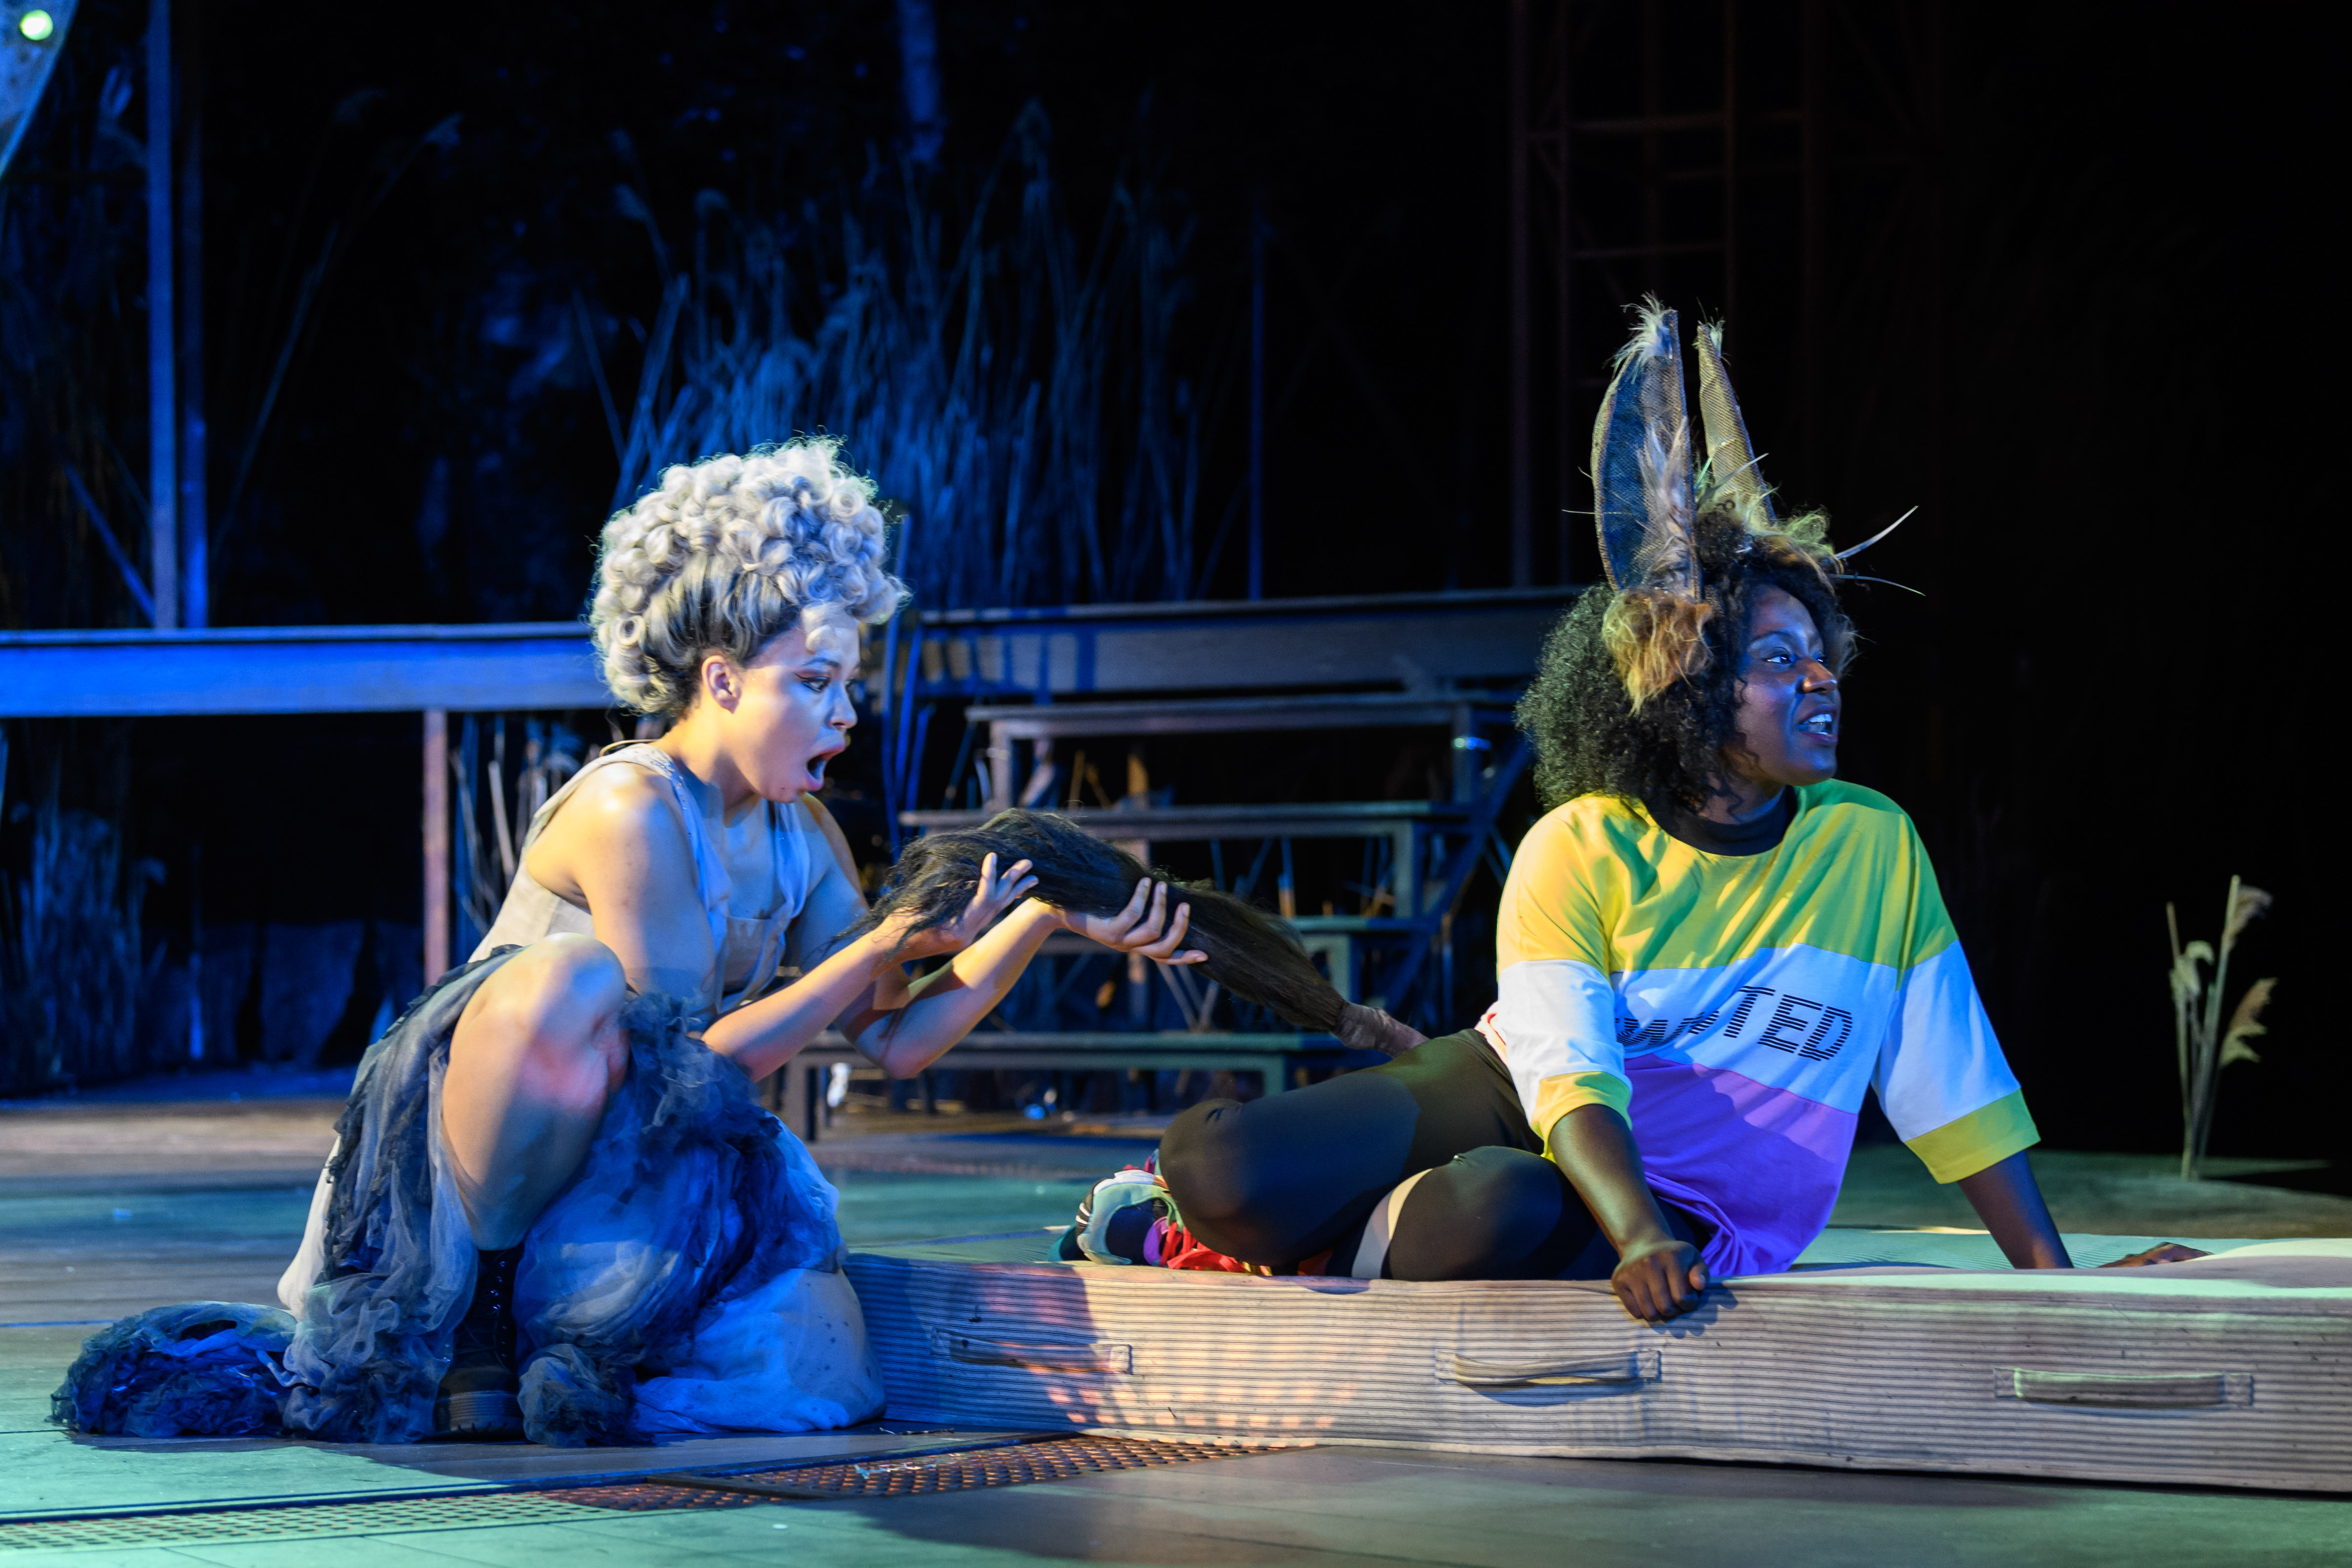 Amber James and Susan Wokoma as Titania and Bottom in A Midsummer Night's Dream at the Open Air Theatre. Photo Jane Hobson